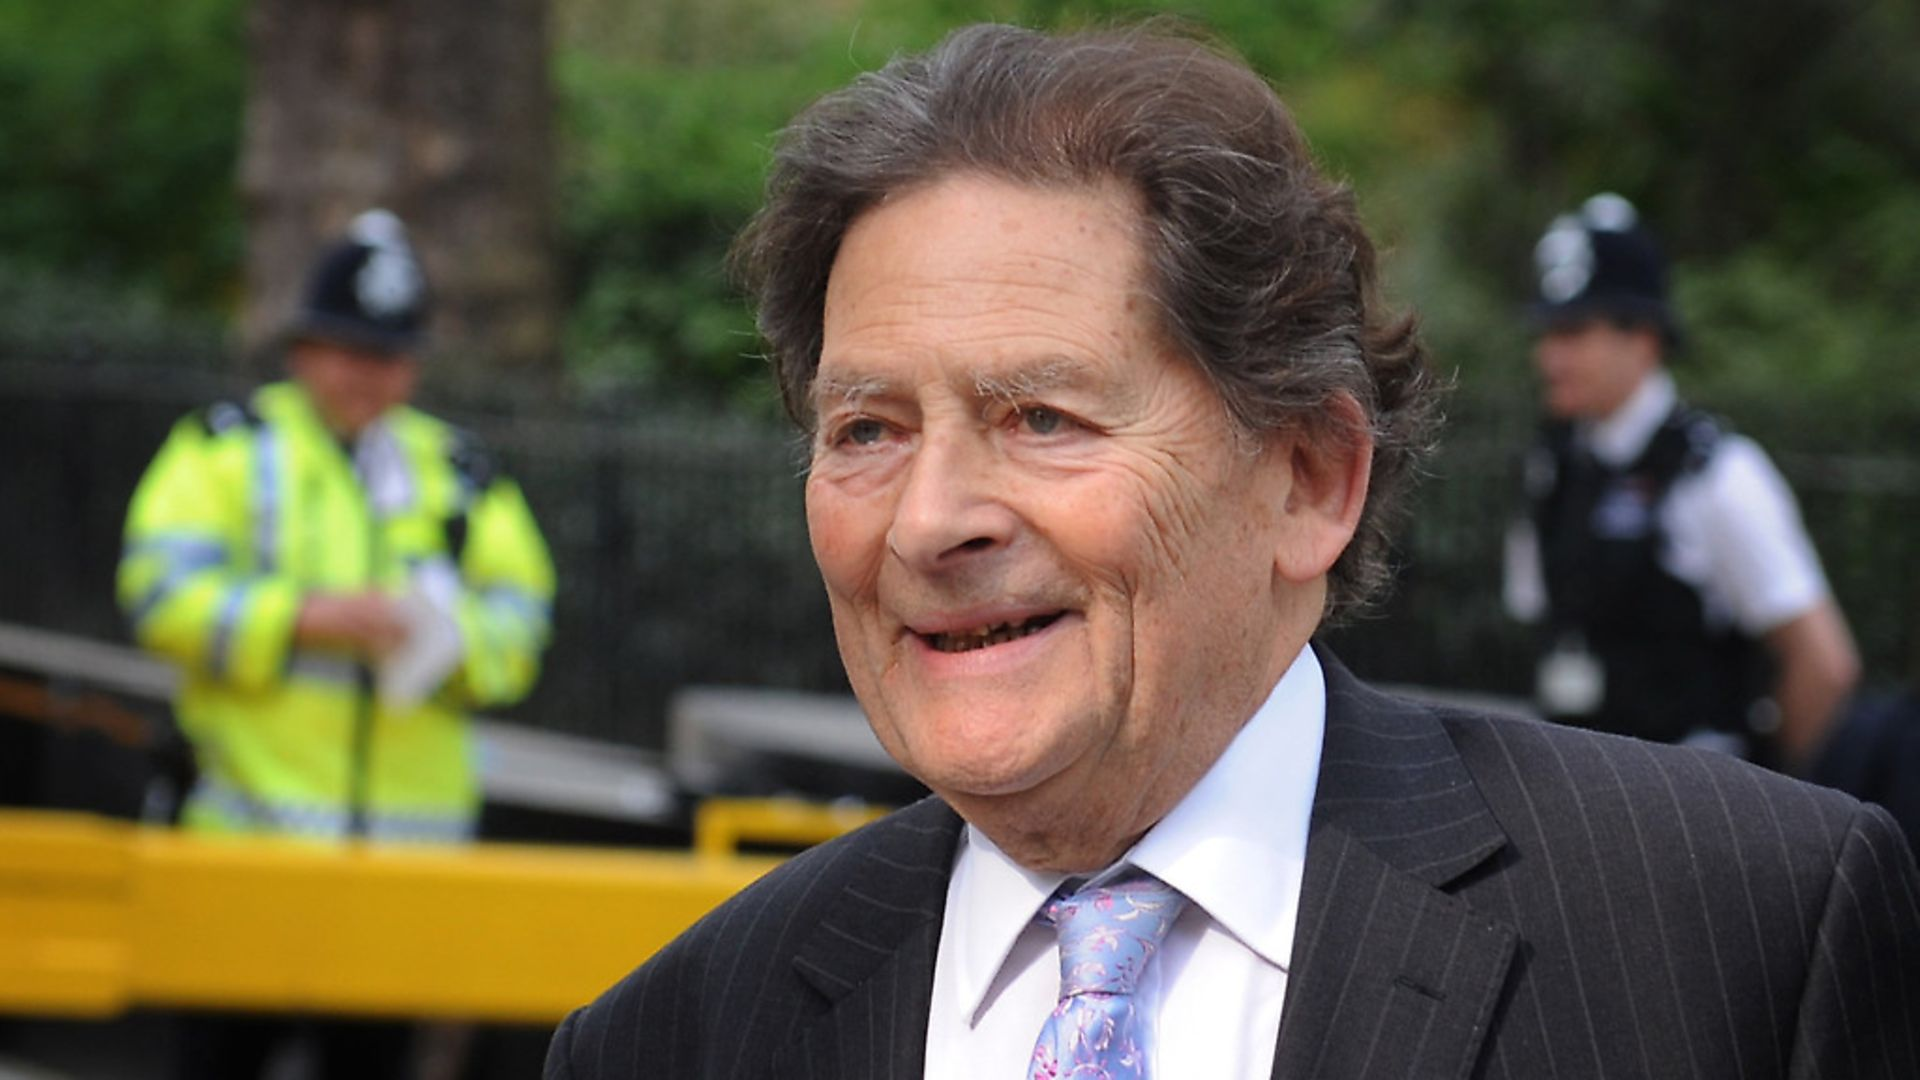 Former Chancellor of the Exchequer Nigel Lawson. Photograph: Stefan Rousseau/PA. - Credit: PA Archive/PA Images